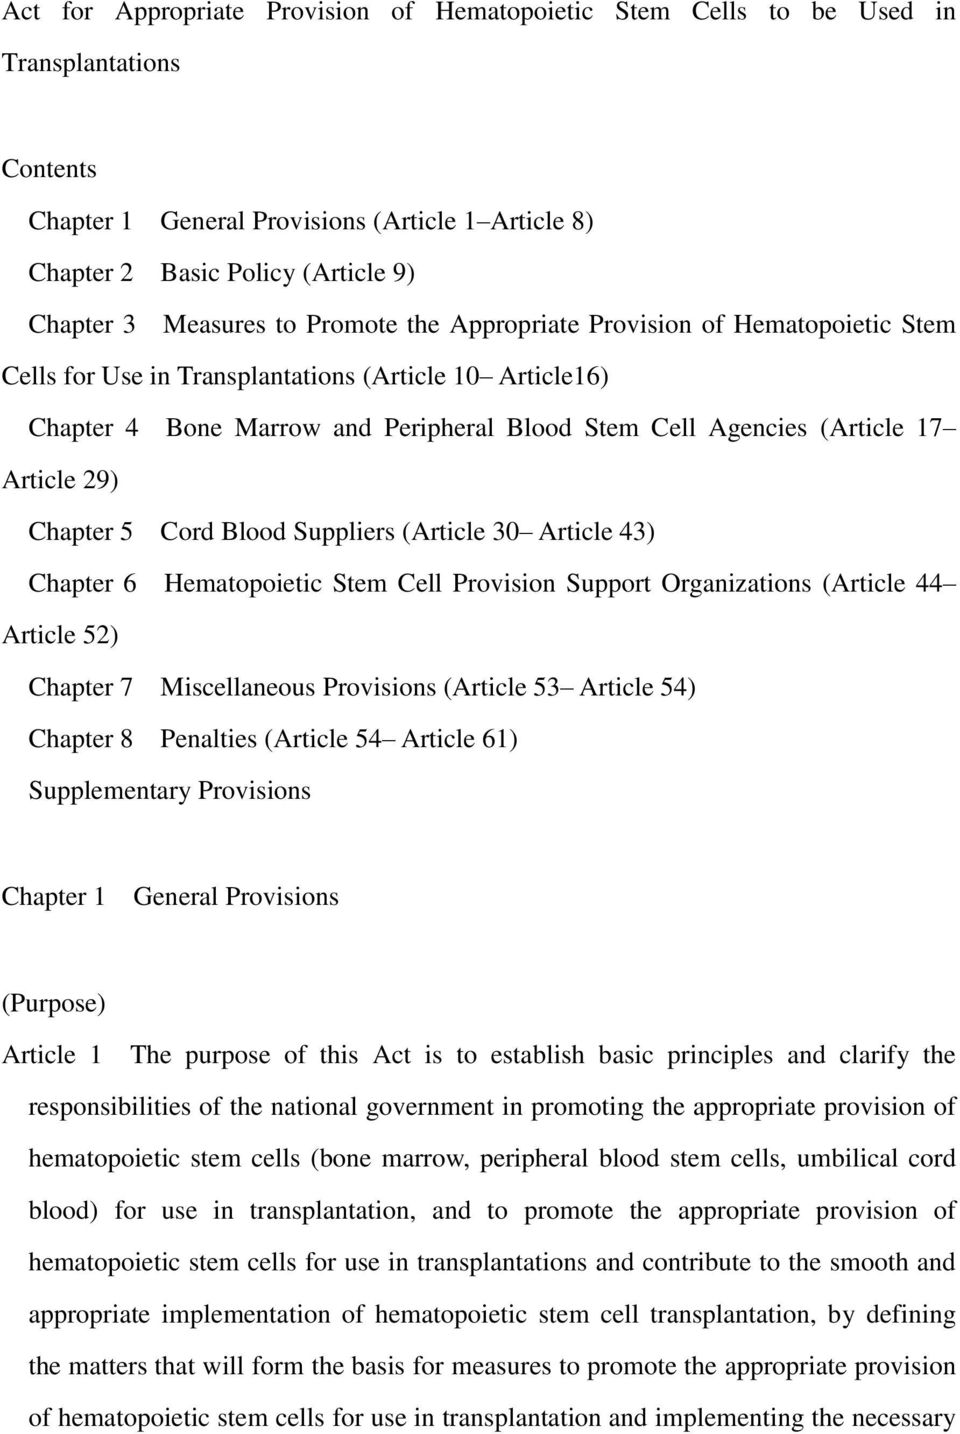 Article 29) Chapter 5 Cord Blood Suppliers (Article 30 Article 43) Chapter 6 Hematopoietic Stem Cell Provision Support Organizations (Article 44 Article 52) Chapter 7 Miscellaneous Provisions